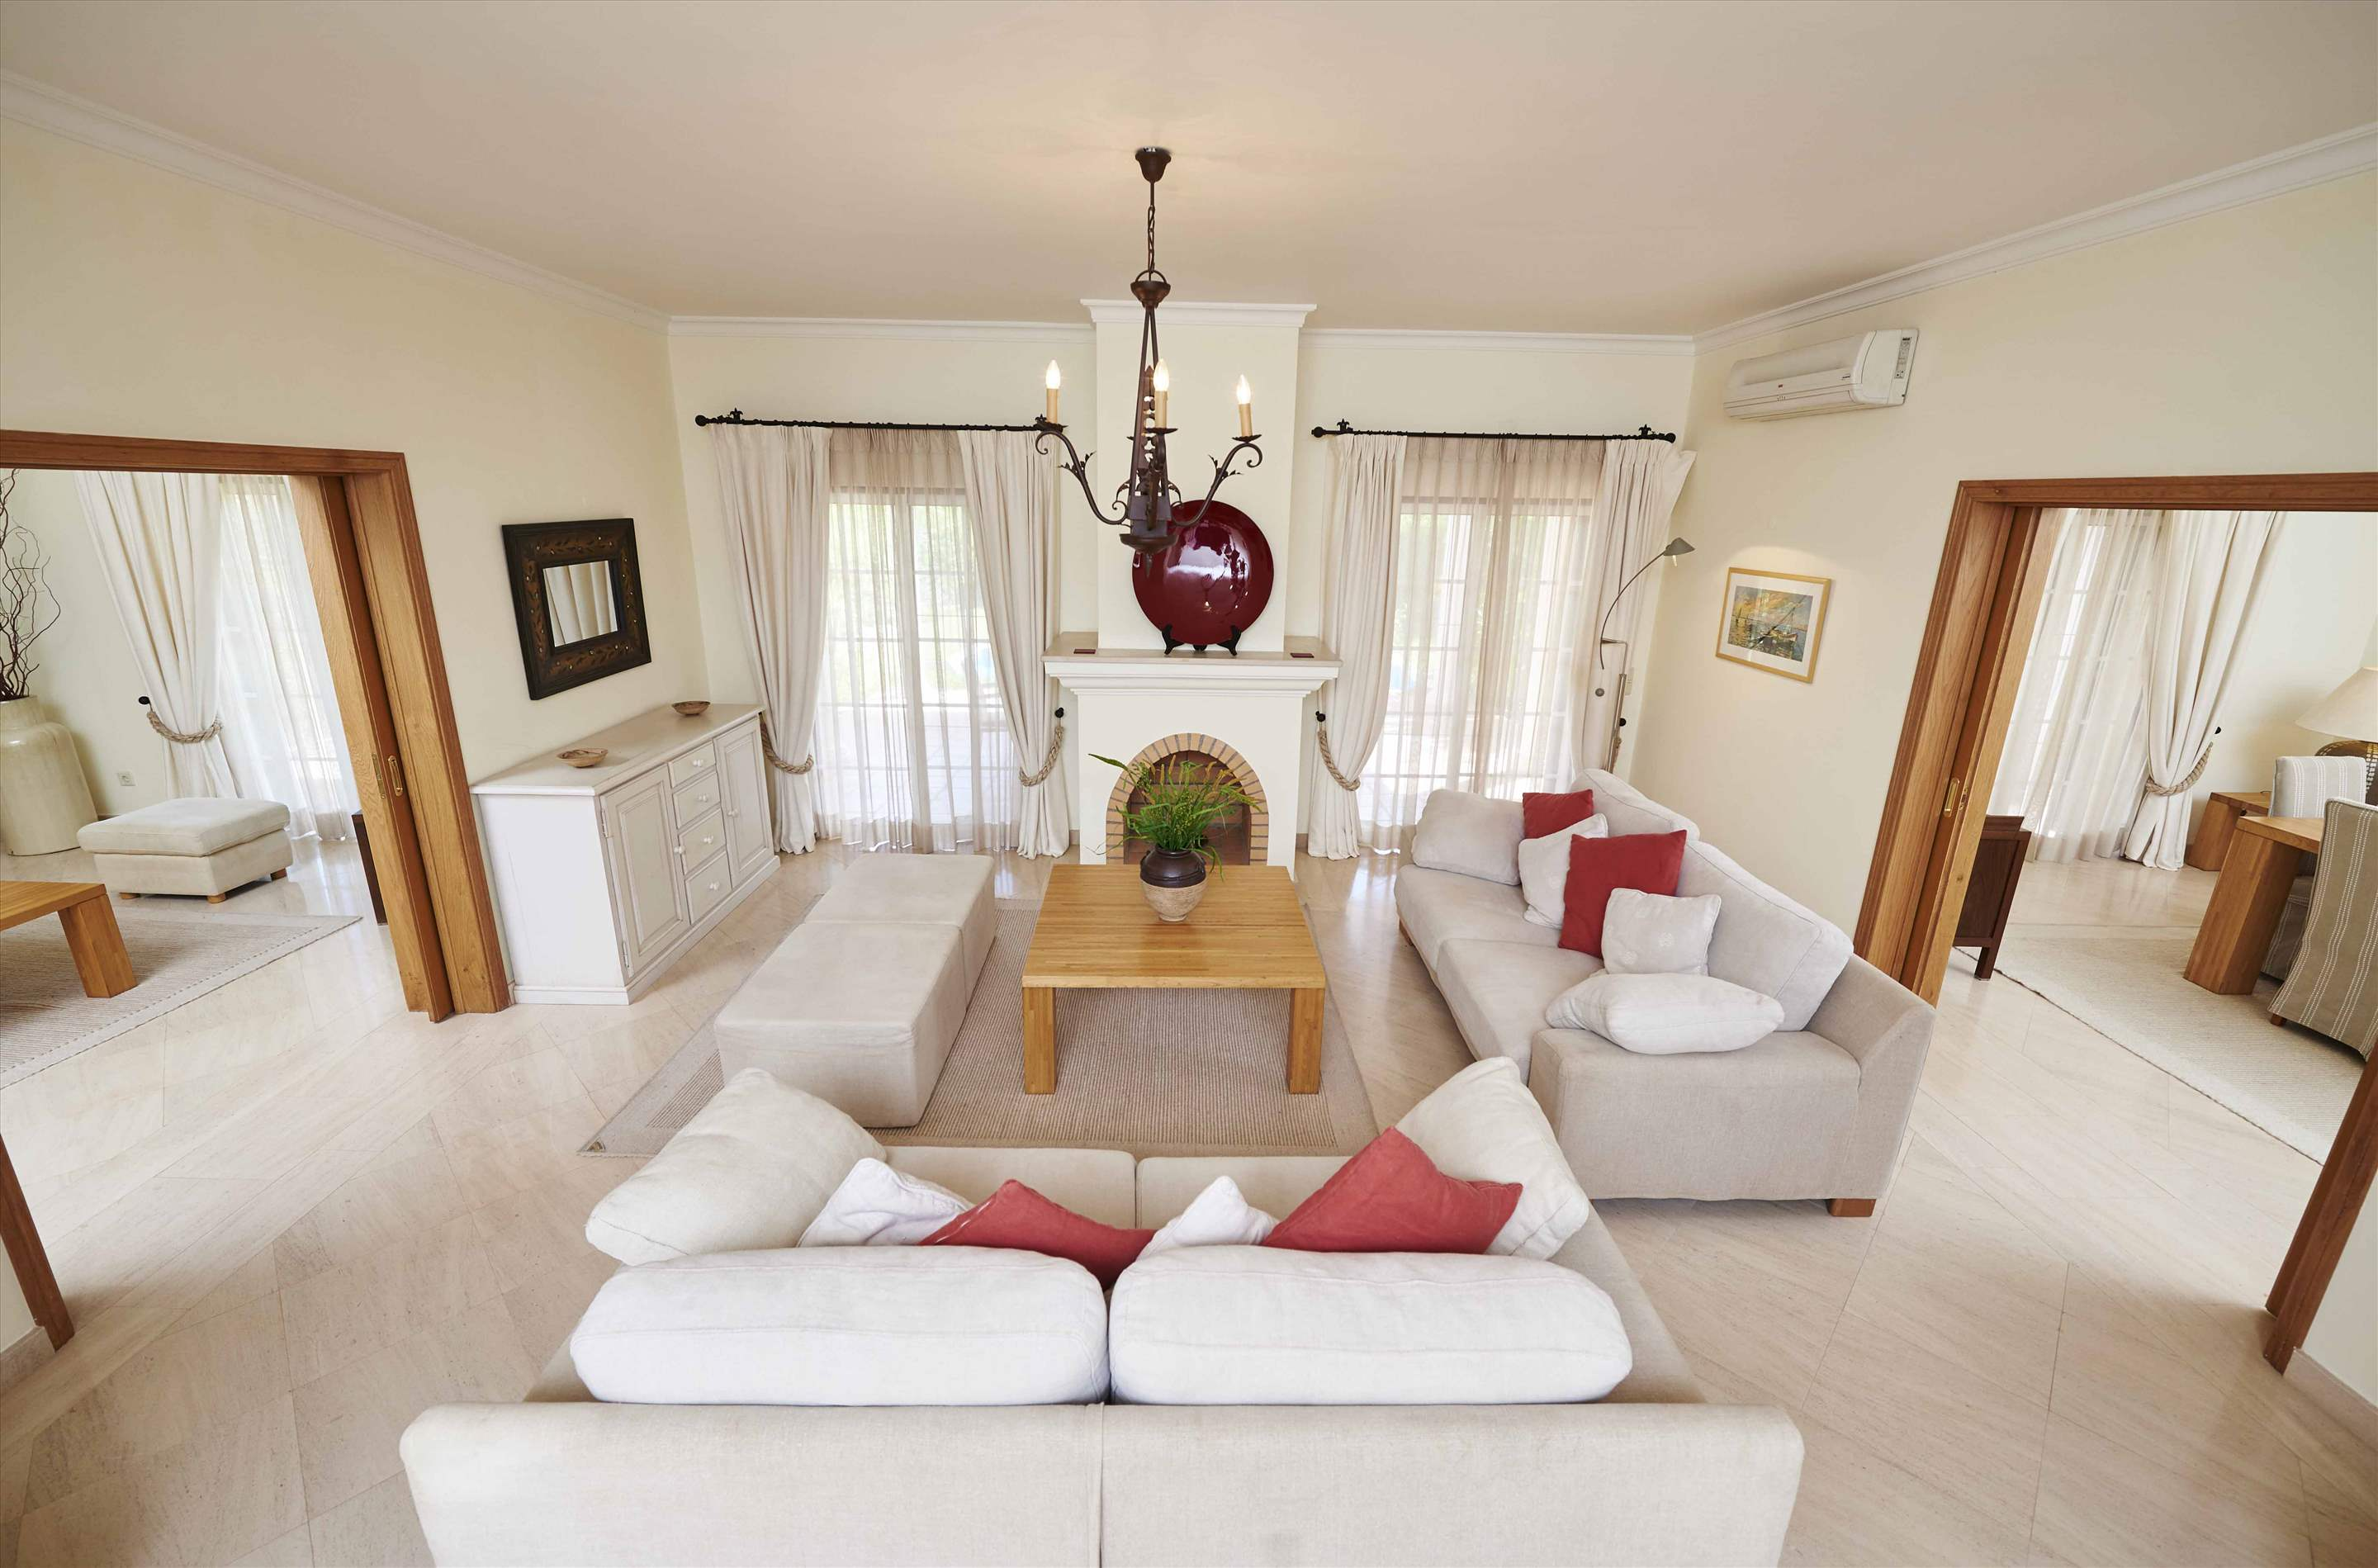 Martinhal Quinta Villa (4 Bedrooms), 4 bedroom villa in Martinhal Quinta Resort, Algarve Photo #2